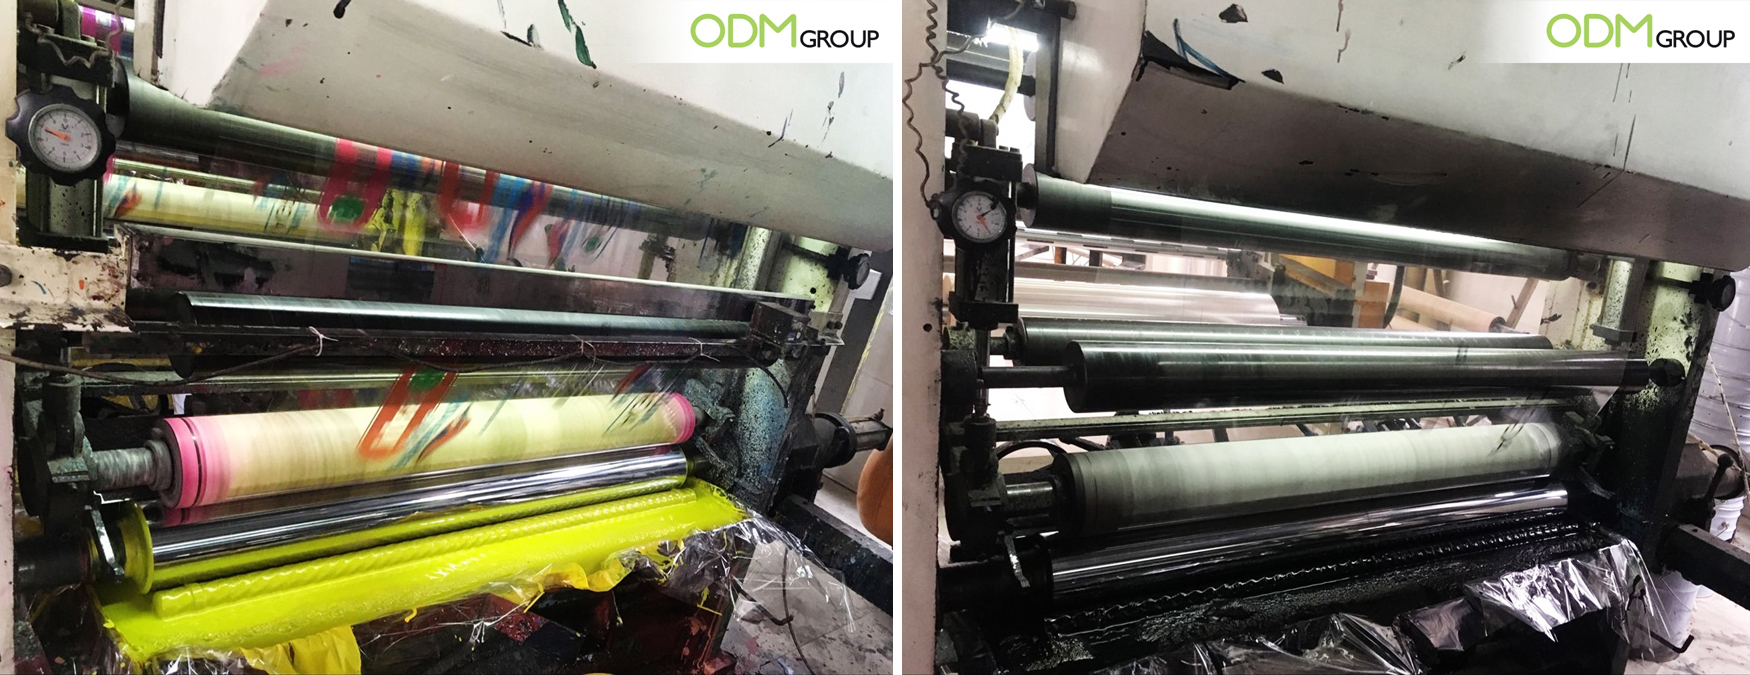 ODM's Patented Reflective Shopping Bags Manufacturing: Ink Box